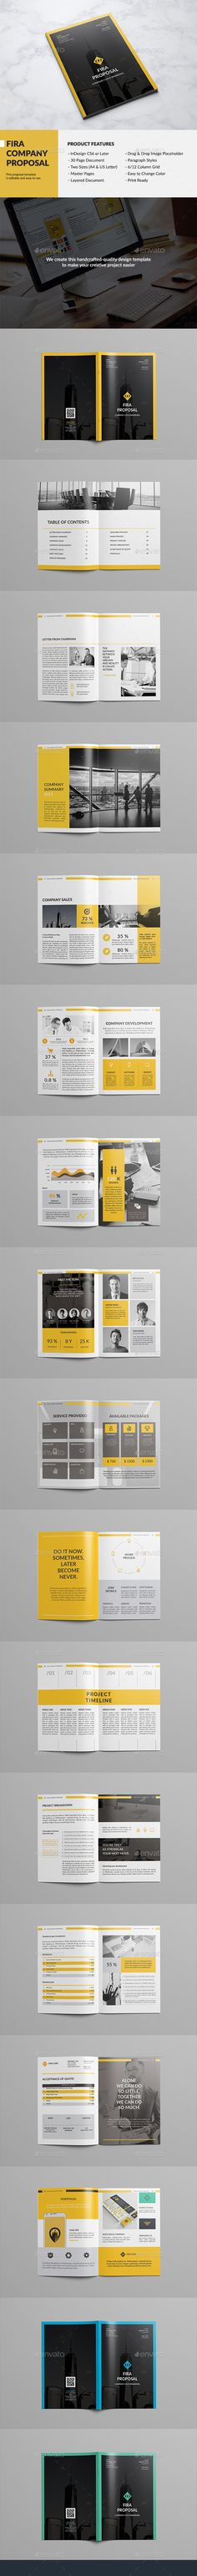 Brand Identity Guidelines, The Company Profile Company profile - company profile templates